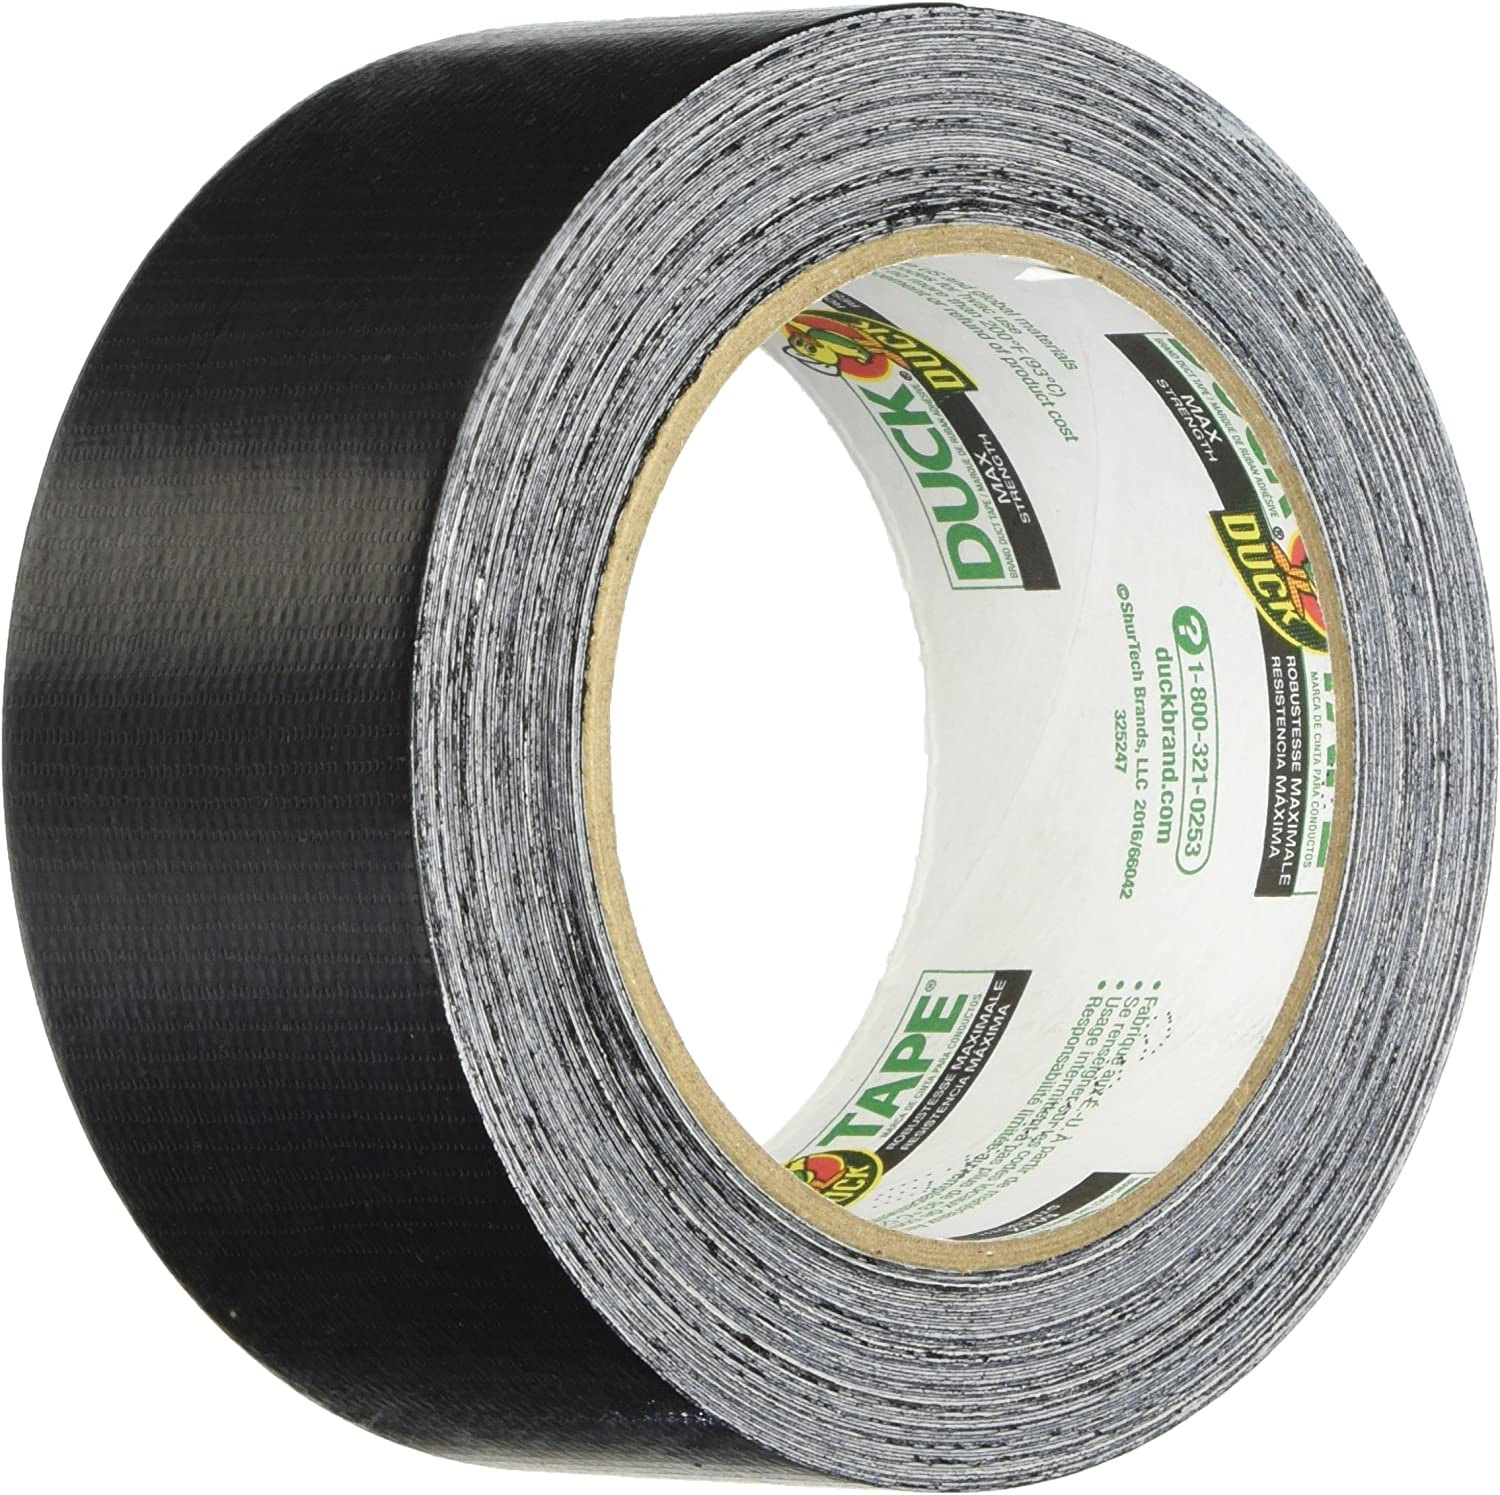 6 Pack Black Duck Brand MAX Strength Duct Tape 1.88 Inches by 30 Yards